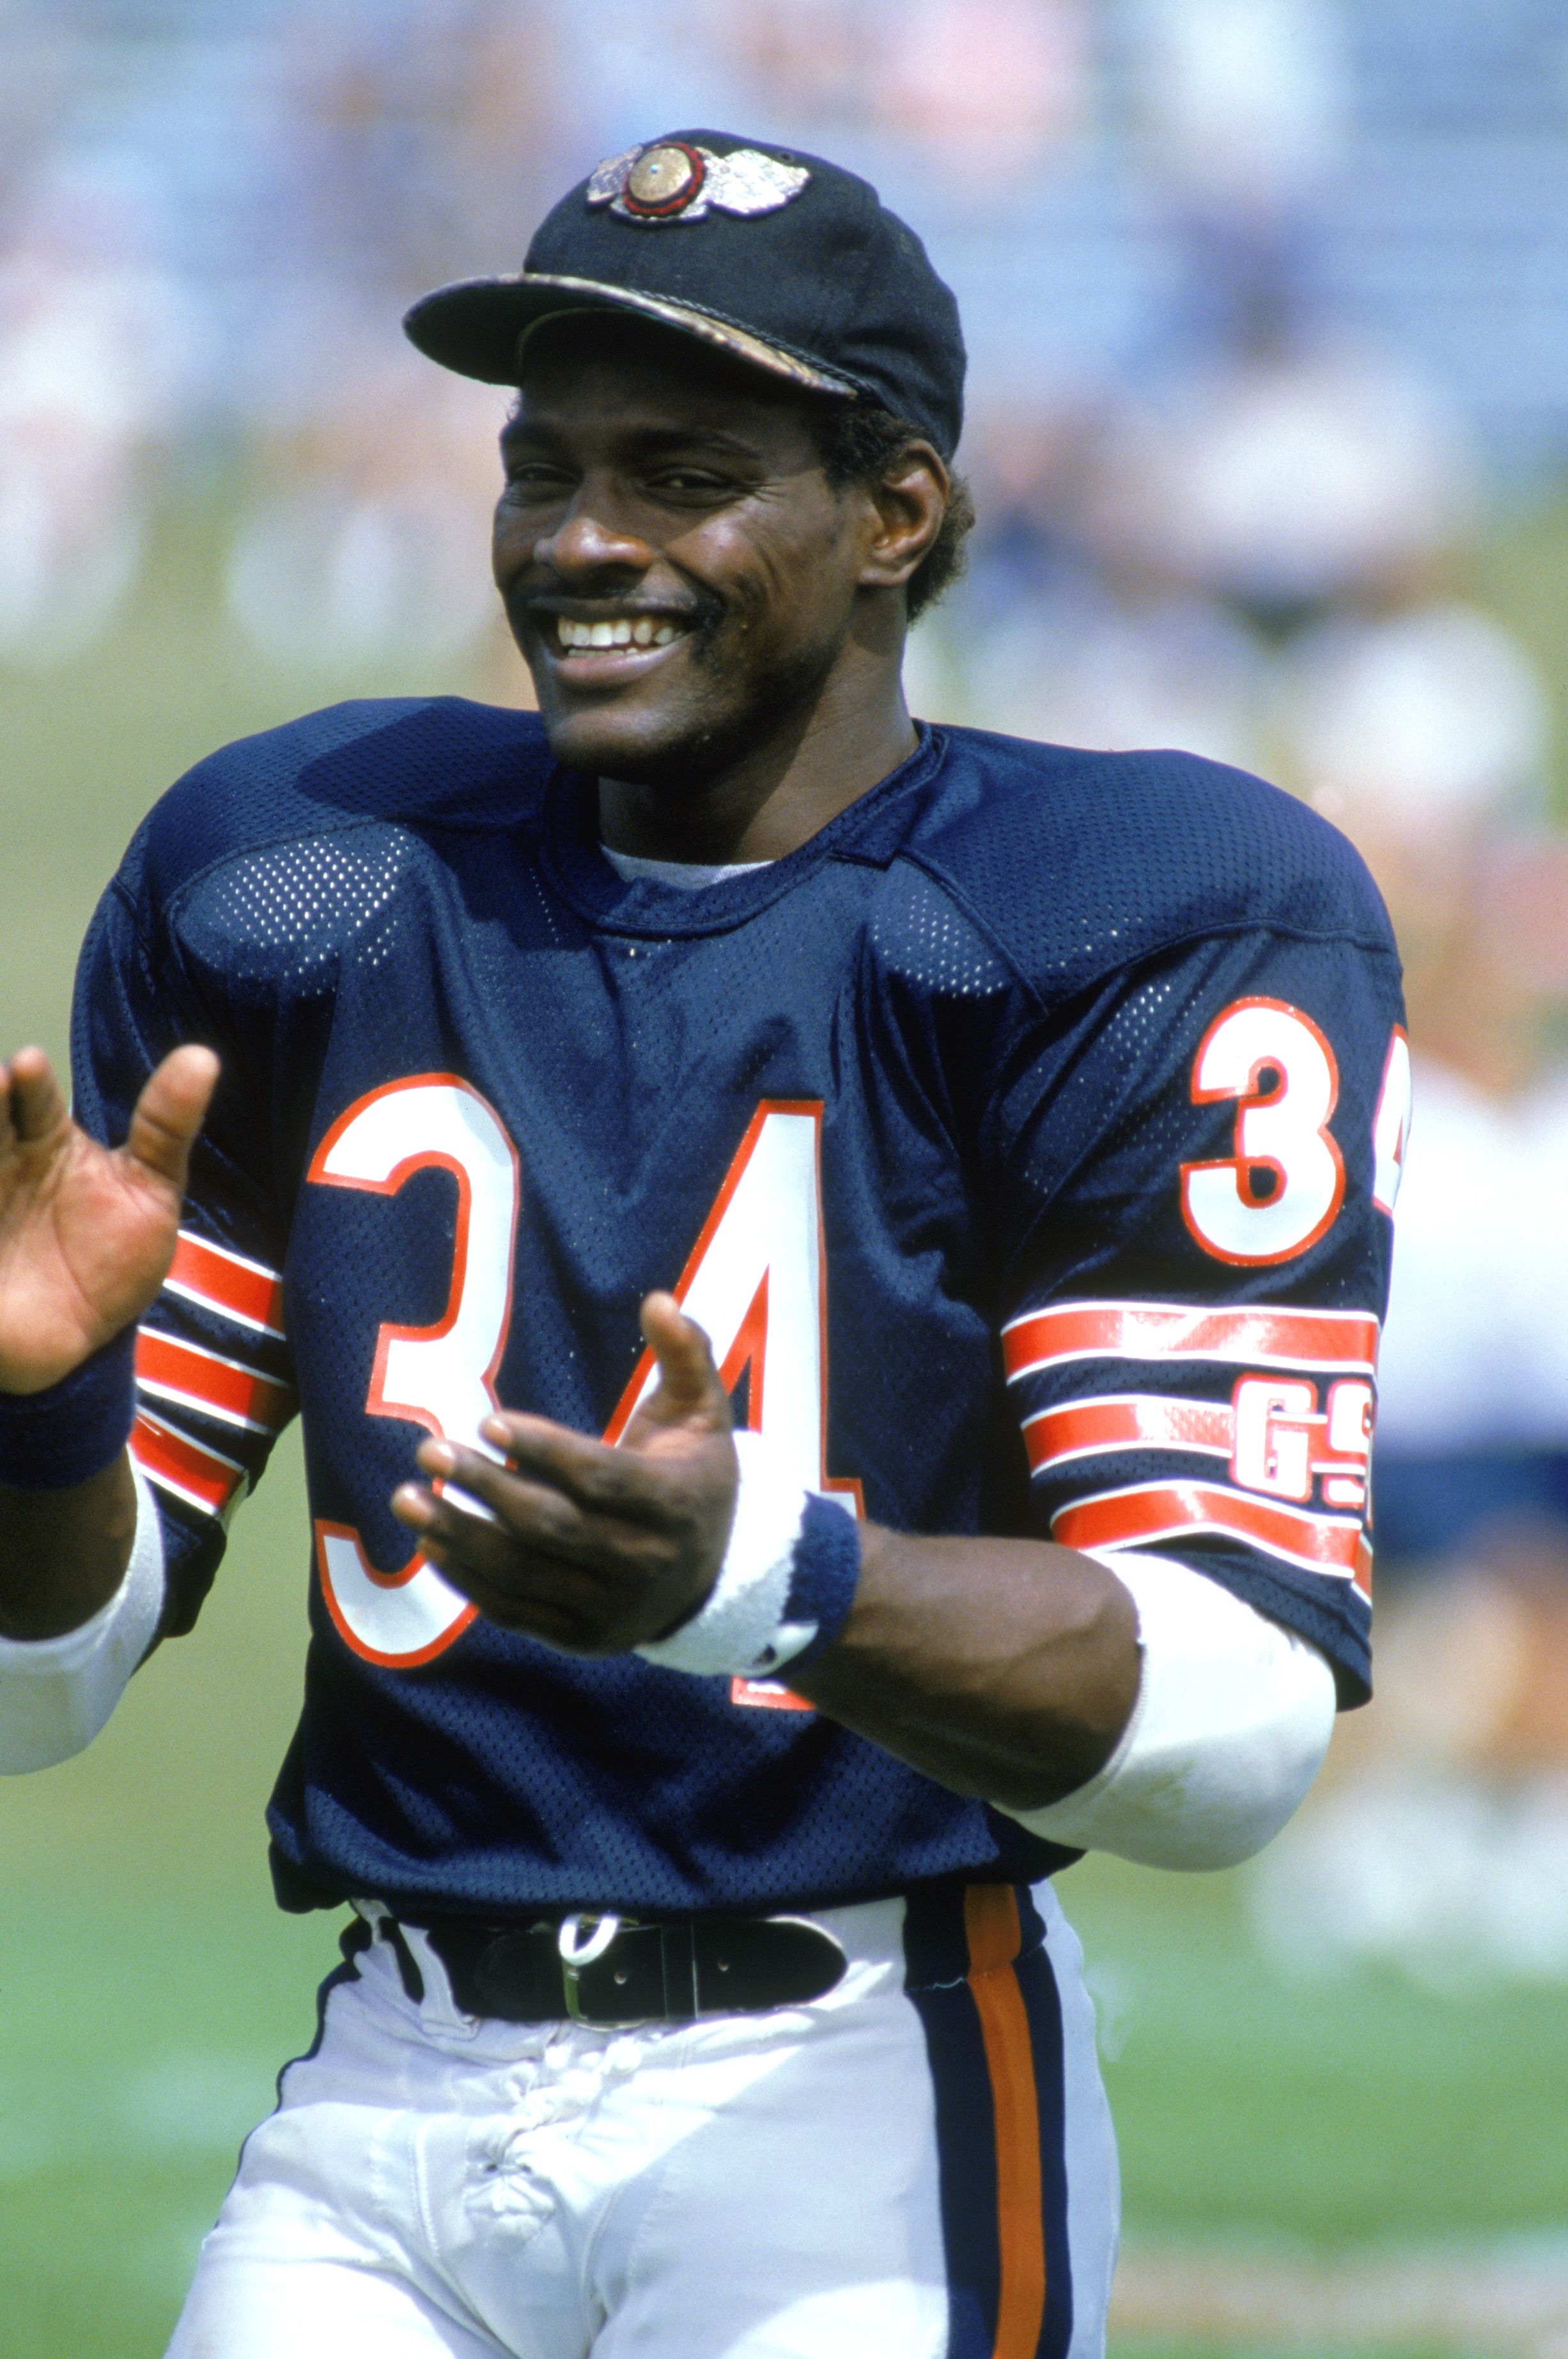 Walter Payton S Sweet Nfl Career The Former Running Back For The Chicago Bears Is One Of The Best And Mo Walter Payton Chicago Bears Football Chicago Sports